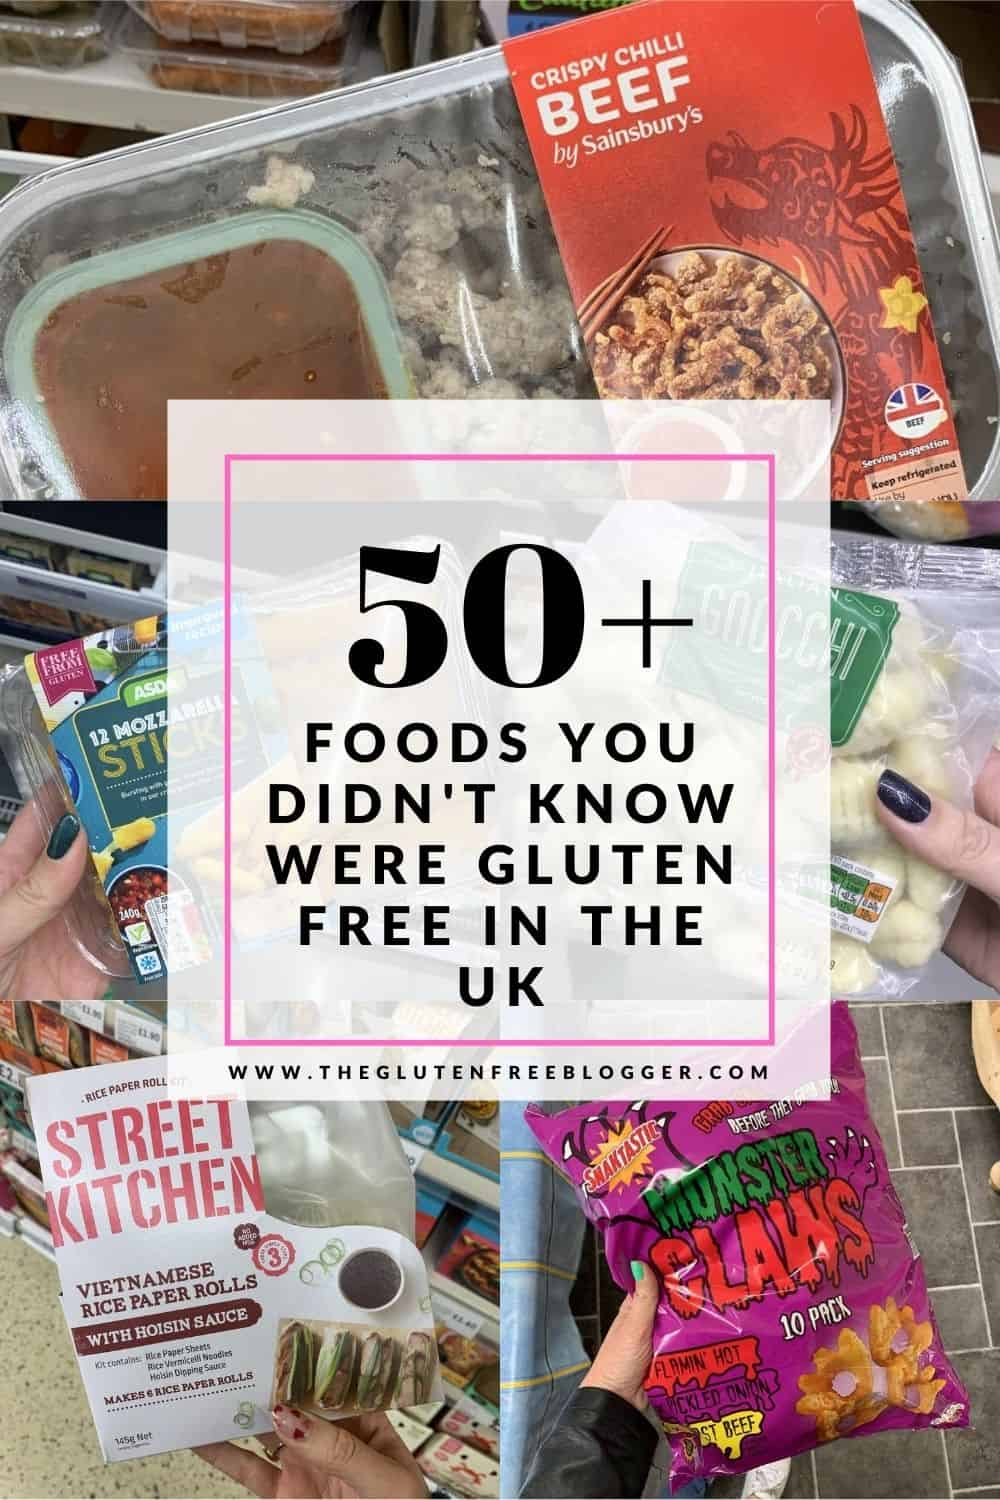 ACCIDENTALLY GLUTEN FREE FOODS IN THE UK